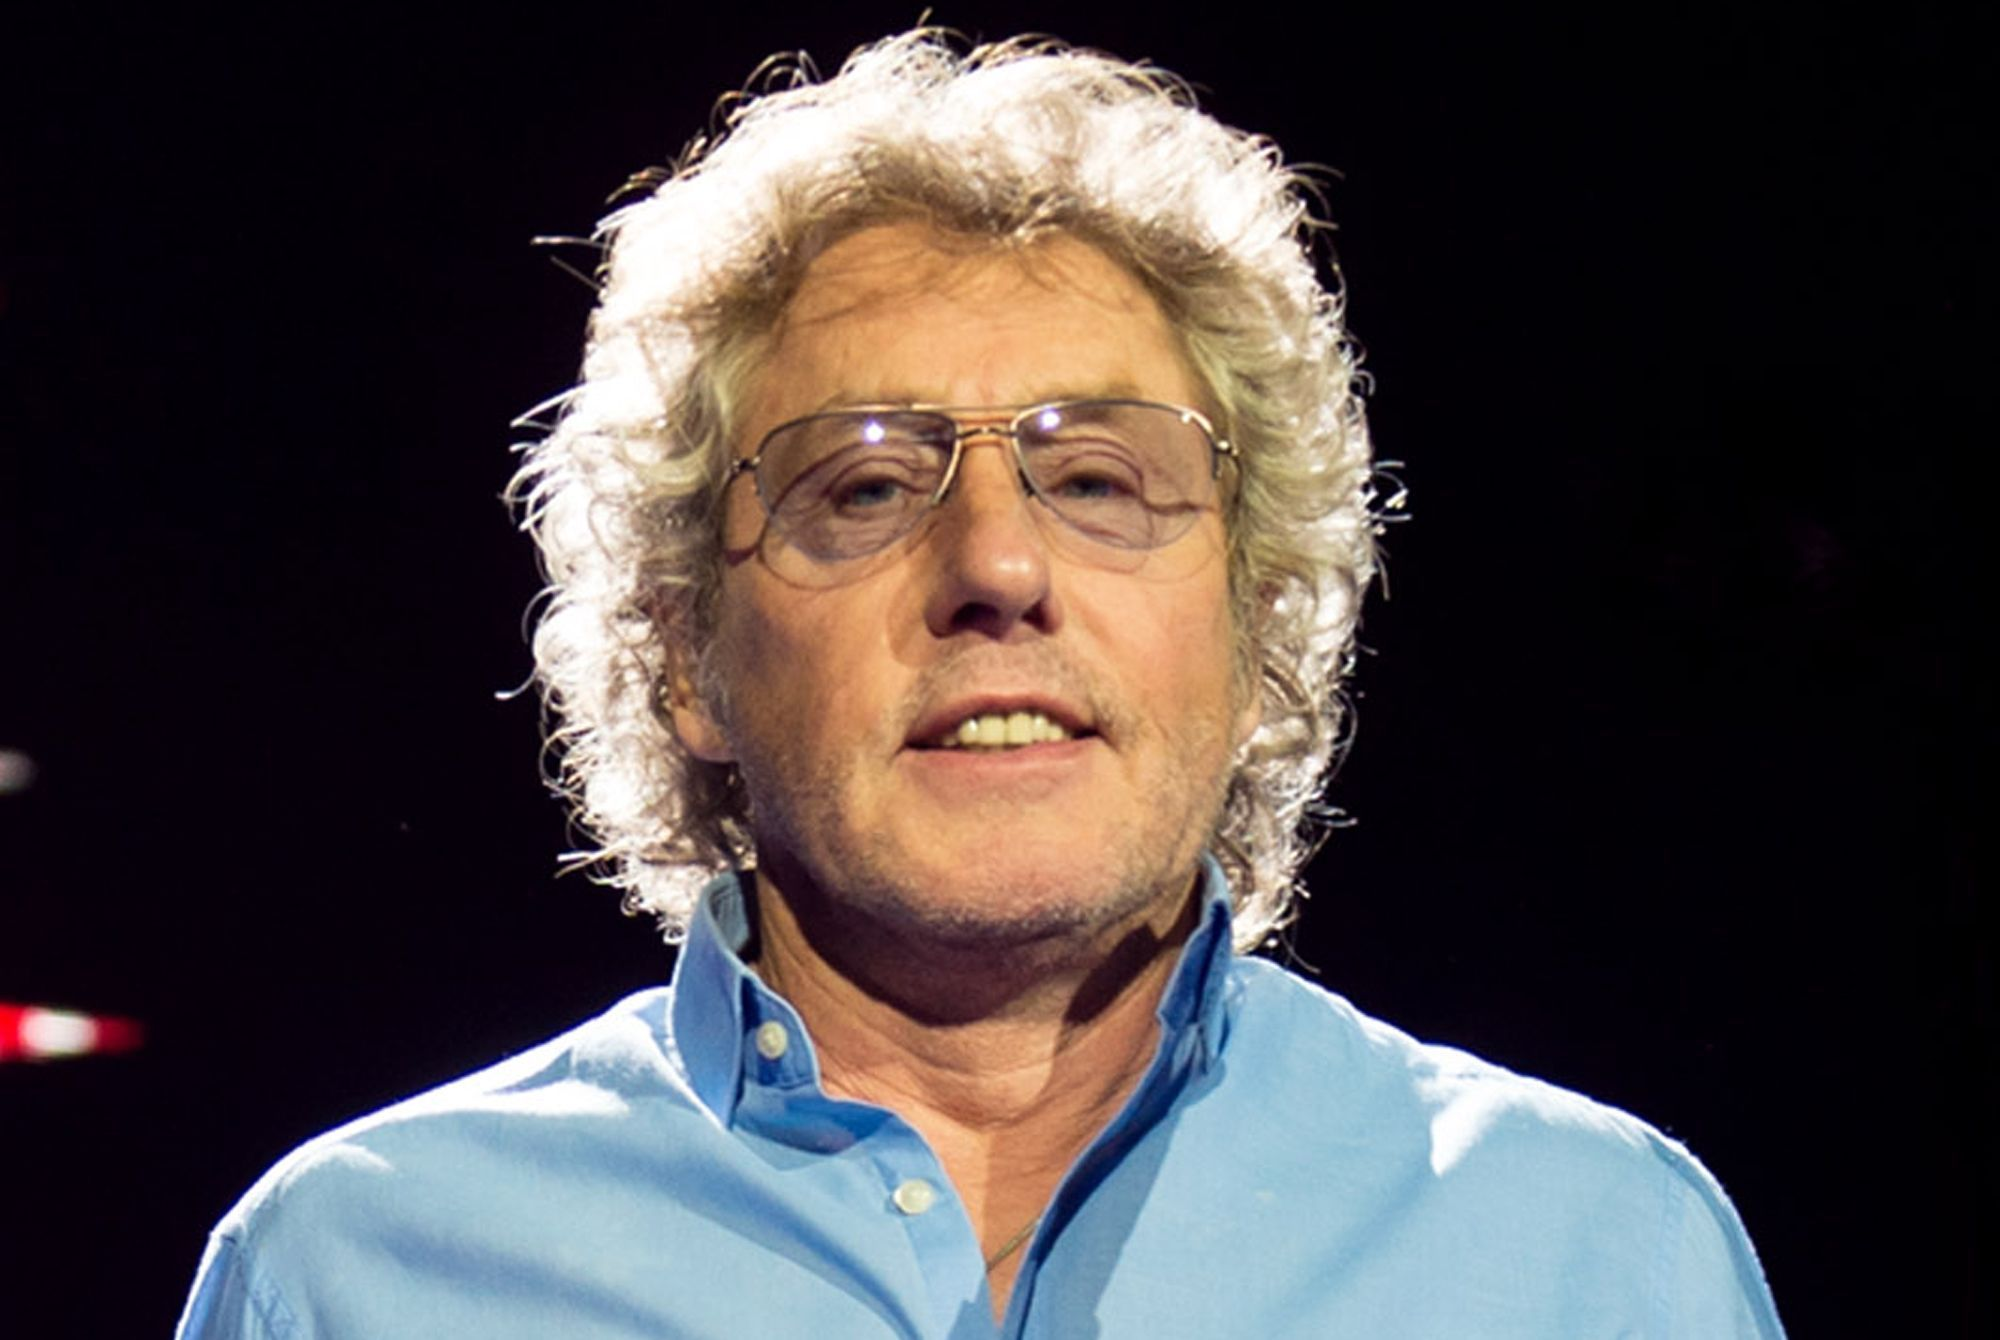 roger daltrey full albumroger daltrey albums, roger daltrey height, roger daltrey 2017, roger daltrey flowers, roger daltrey daltrey, roger daltrey under a raging moon, roger daltrey woodstock, roger daltrey free me, roger daltrey csi, roger daltrey parting should be painless, roger daltrey beans, roger daltrey liam gallagher, roger daltrey born, roger daltrey interview, roger daltrey robert plant, roger daltrey don't talk to strangers, roger daltrey 1967, roger daltrey - after the fire, roger daltrey full album, roger daltrey i'm free